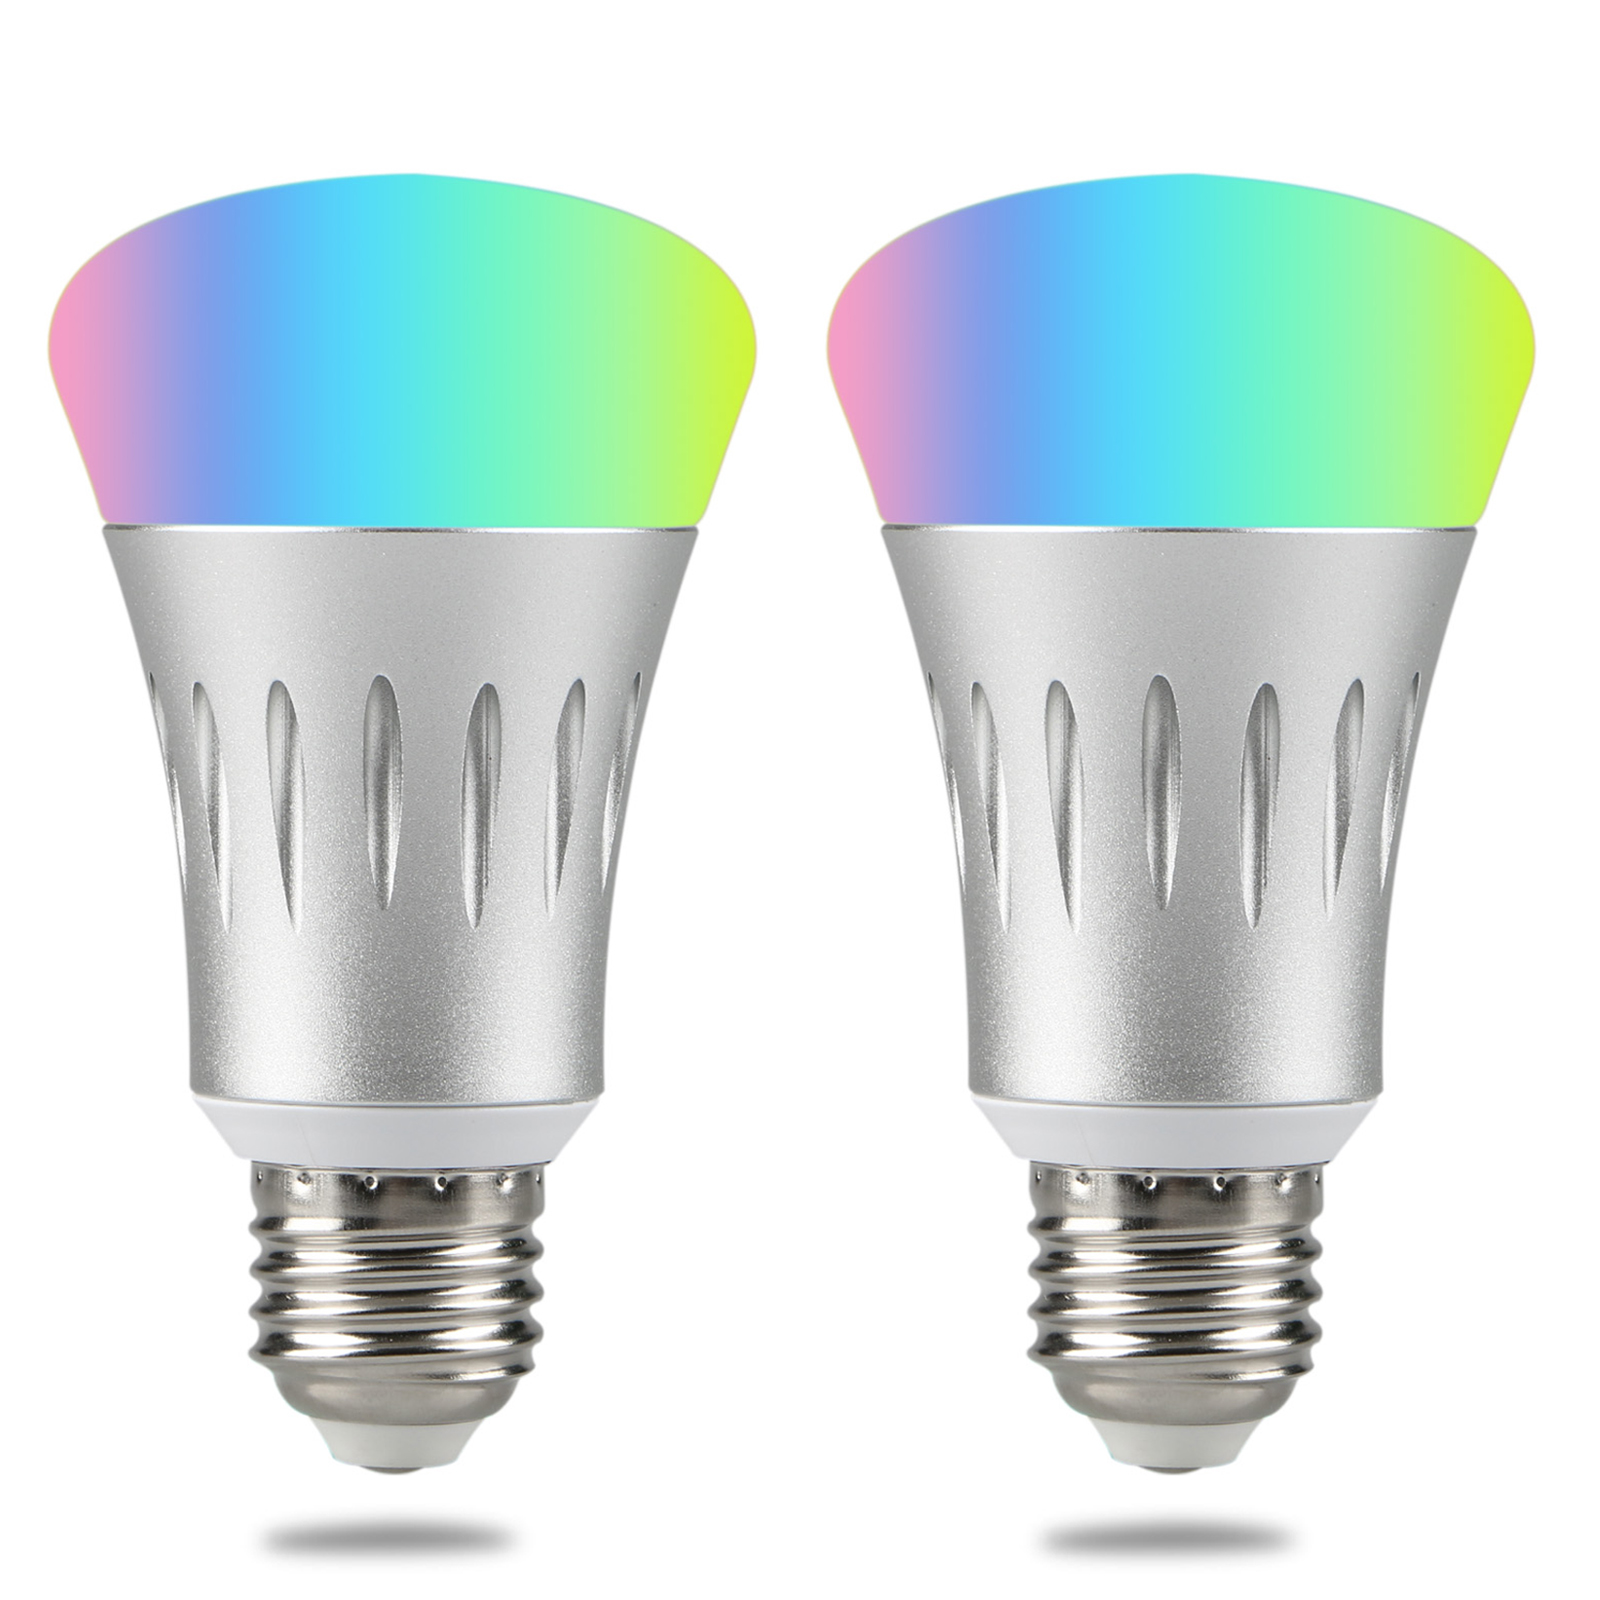 1x 2x 7w e27 wifi smart led light bulb work with amazon alexa rgb remote control ebay. Black Bedroom Furniture Sets. Home Design Ideas